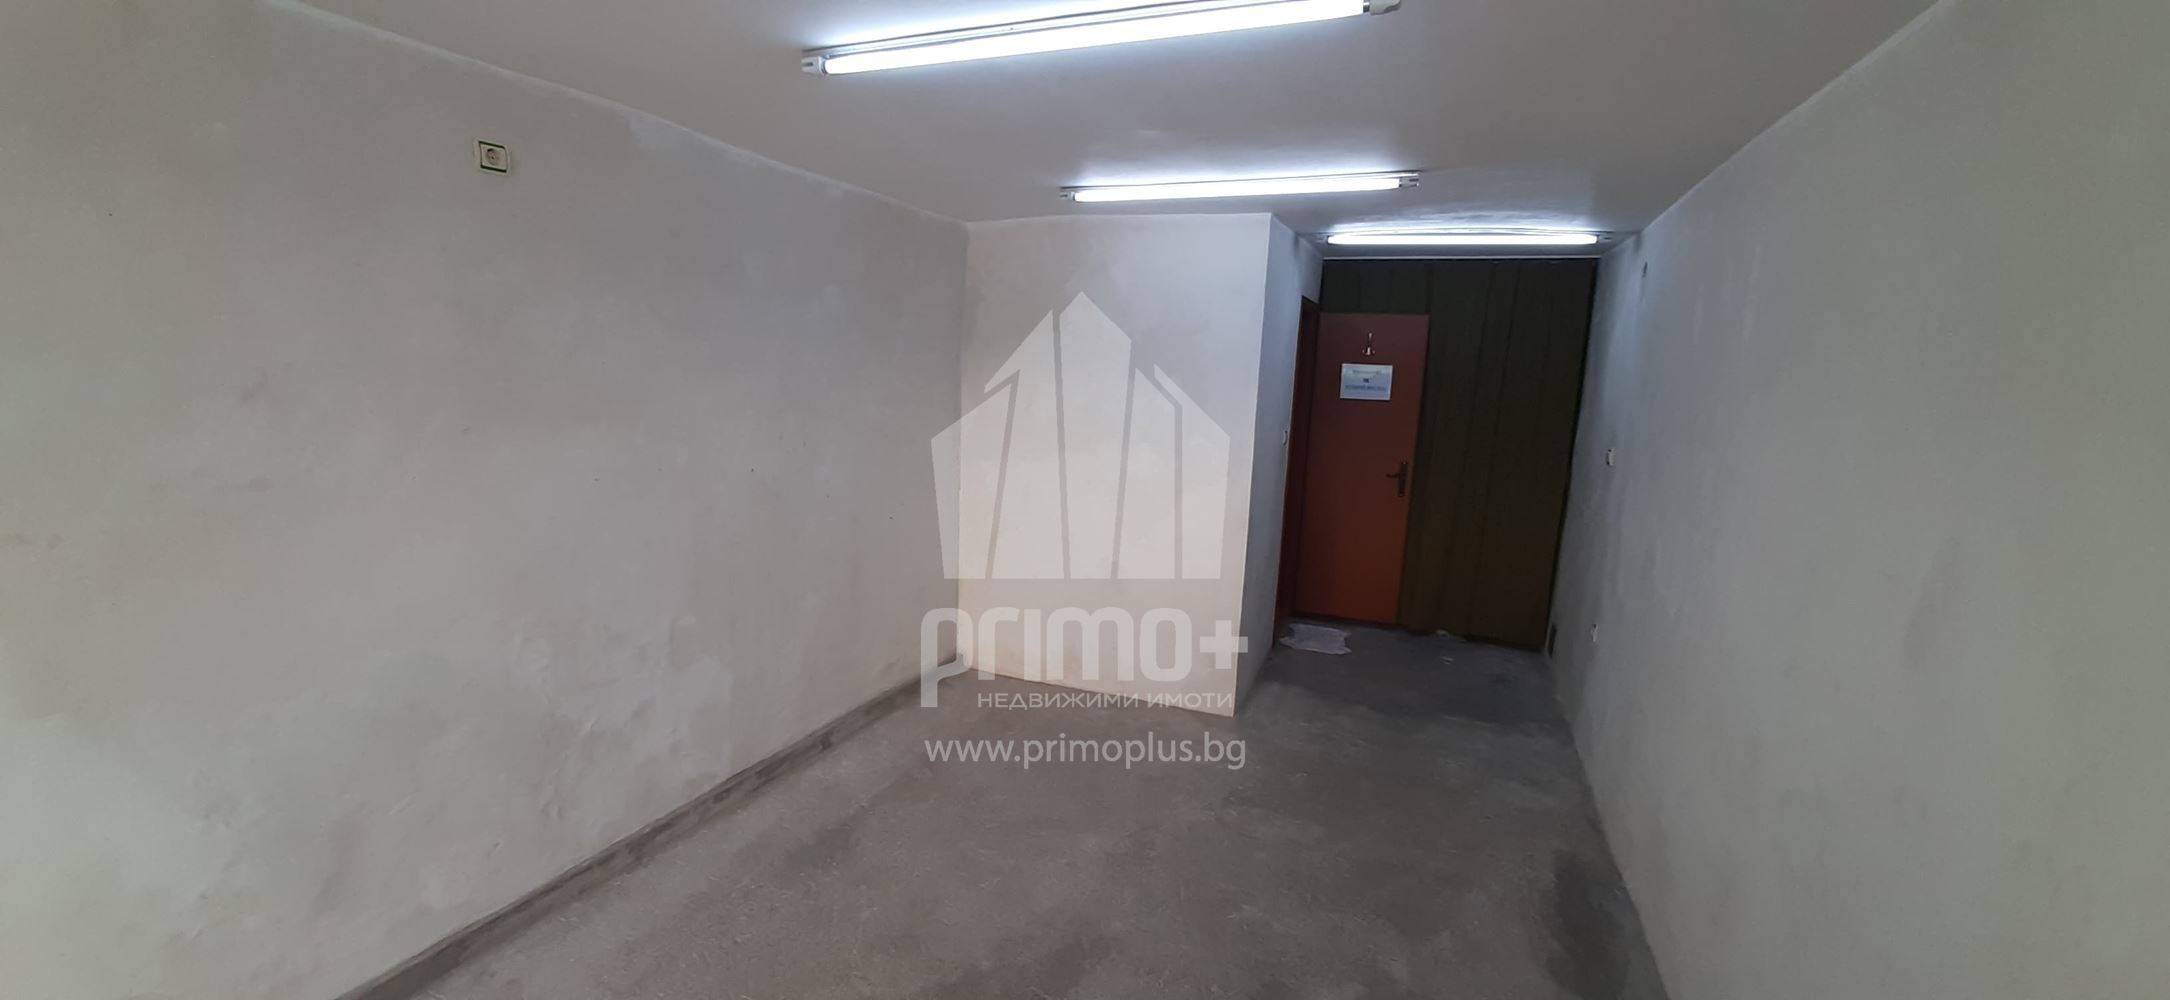 For Rent, Warehouse, ul. Magistralna, Veliko Tarnovo, ,For Rent